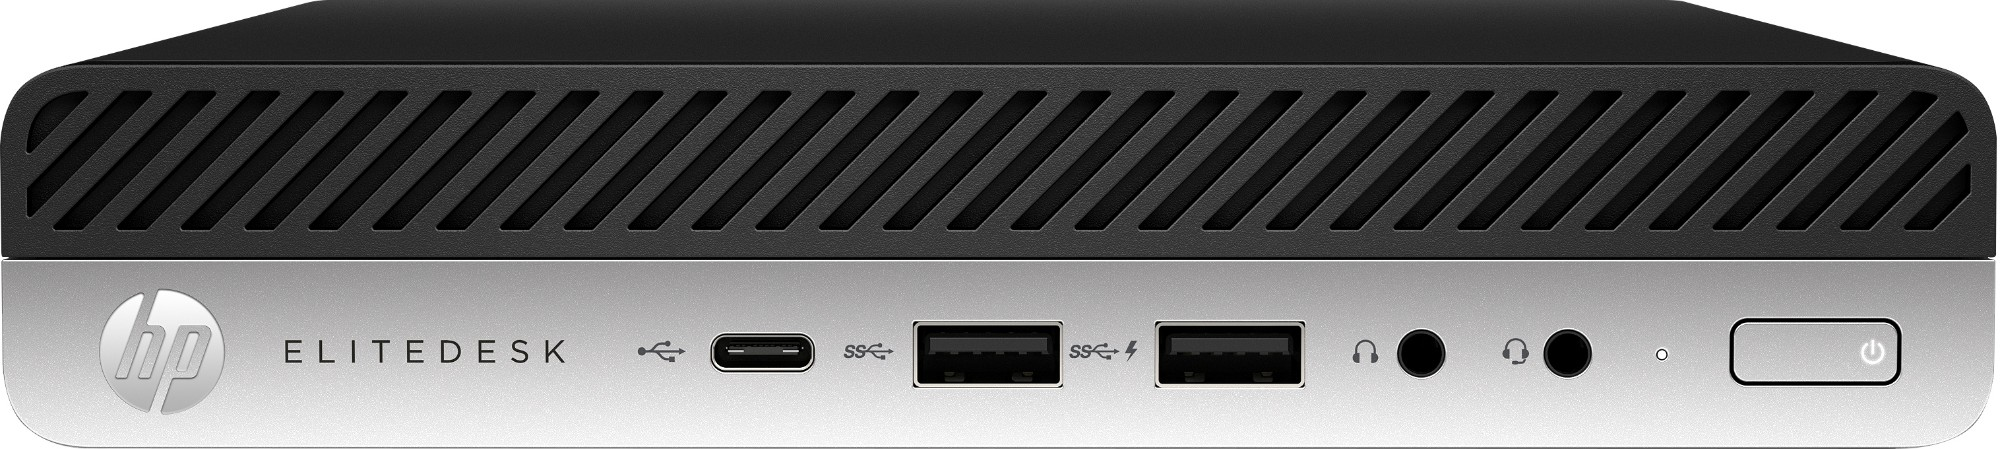 HP EliteDesk 705 G4 AMD Ryzen 5 2400GE 8 GB DDR4-SDRAM 256 GB SSD Black,Silver Mini PC